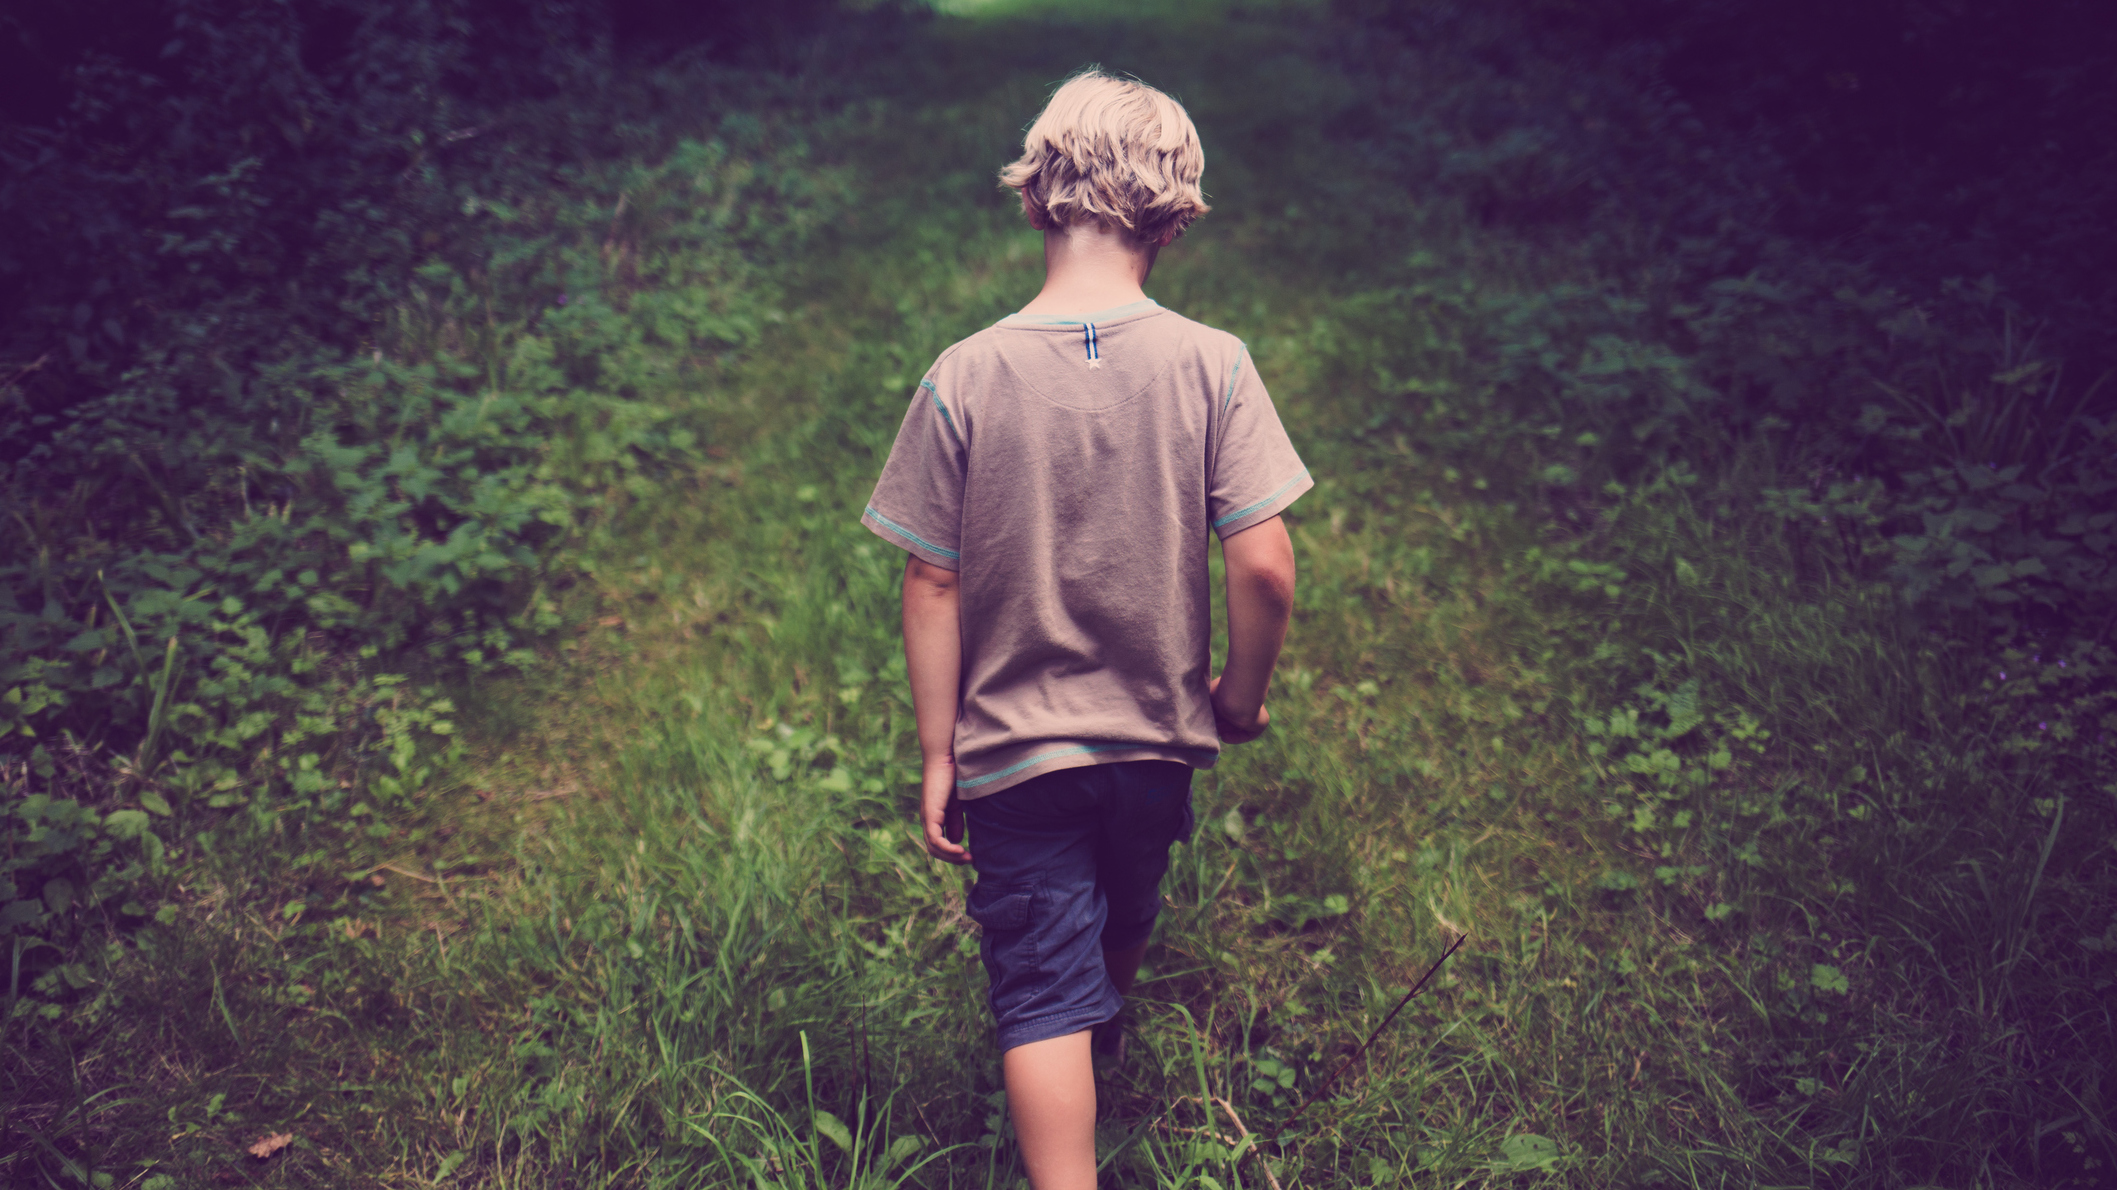 Why Do We Judge Parents For Putting Kids At Perceived Risk?